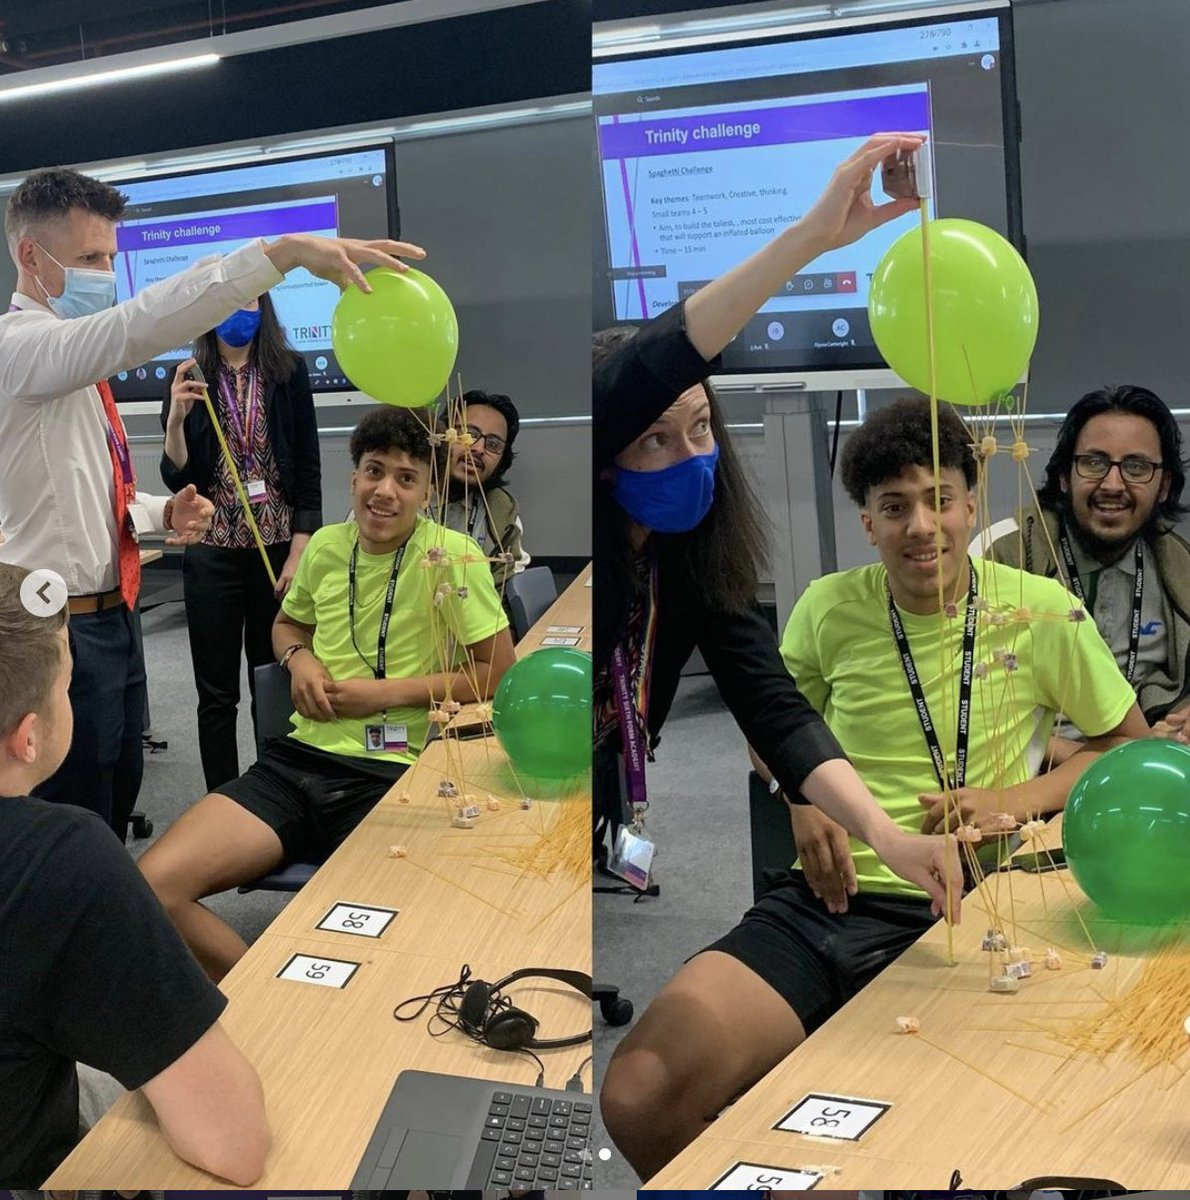 🍝 SPAGHETTI CHALLENGE! 🍝 For our final Trinity+ sessions before the summer ☀️, we thought we'd spice things up a bit with some fun team-building challenges! We've tasked the students with building a free-standing structure using only dry spaghetti and jelly babies!